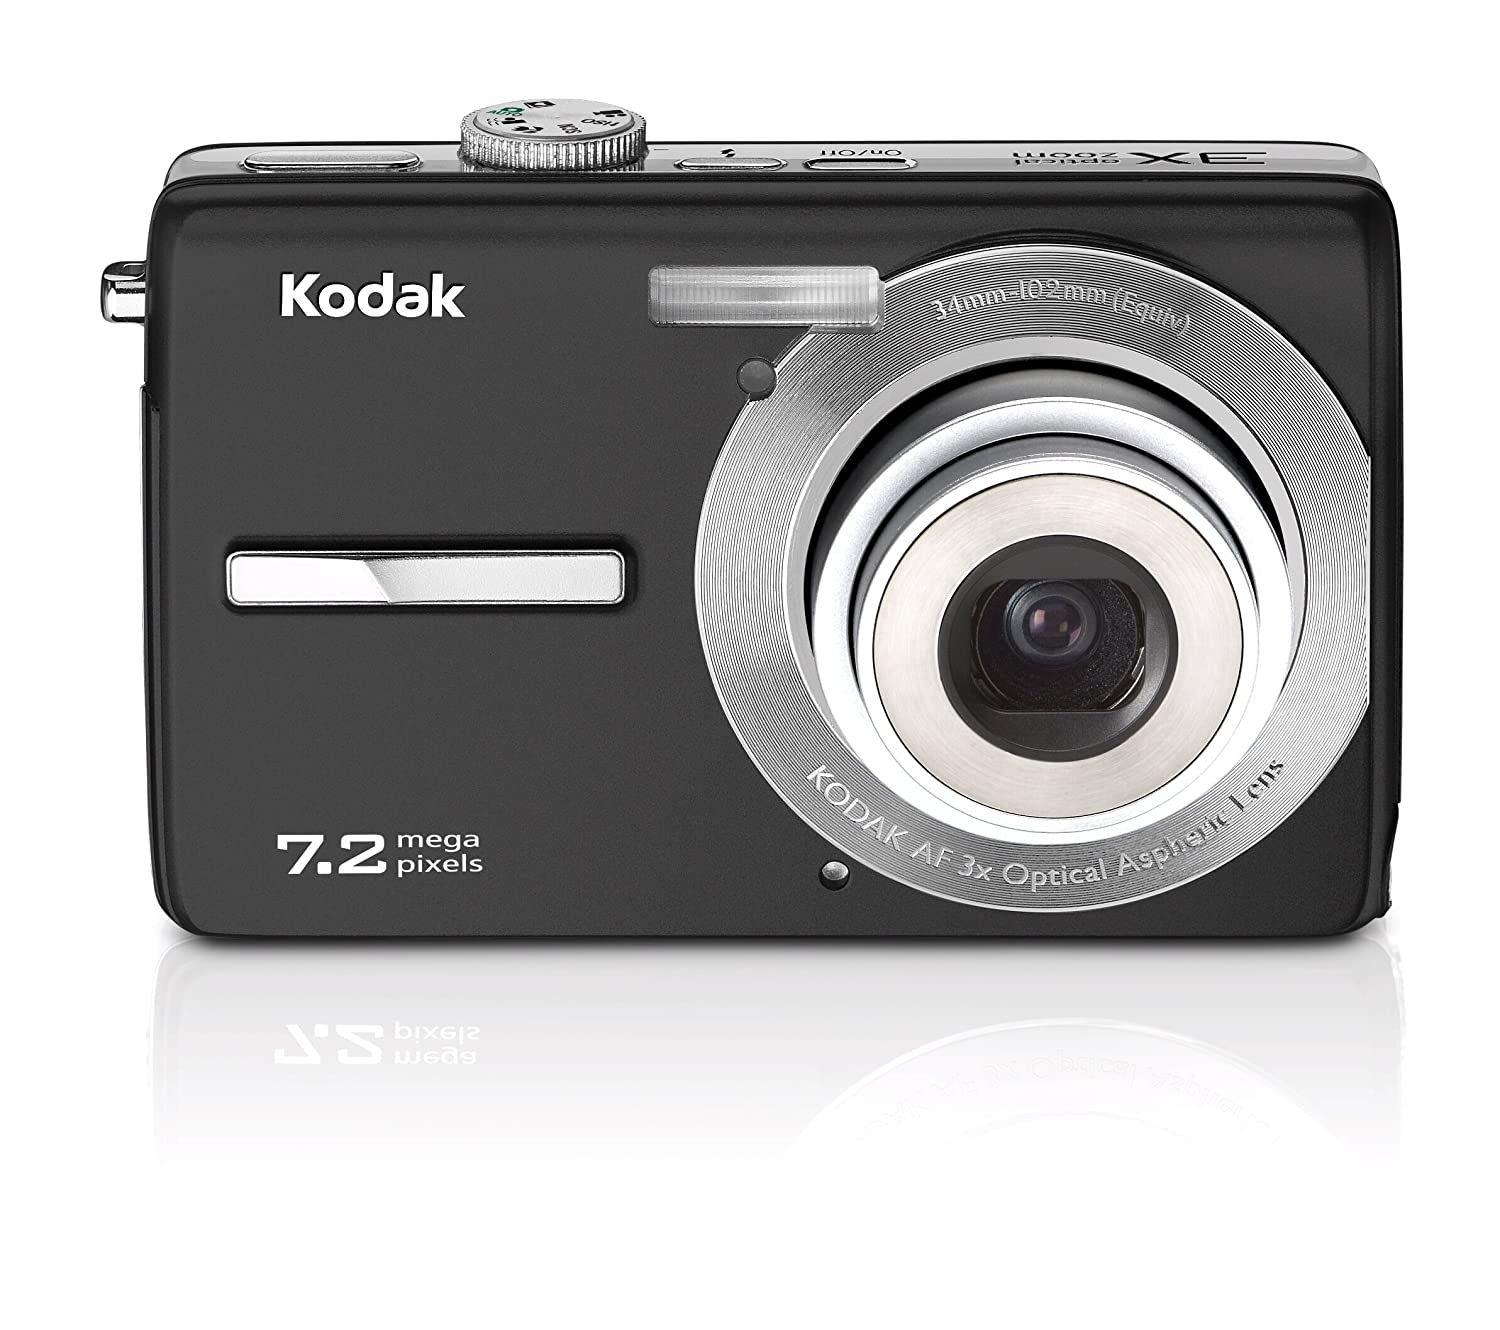 Amazon.com : Kodak Easyshare M763 7.2 MP Digital Camera with 3xOptical Zoom  (Black) : Point And Shoot Digital Cameras : Camera & Photo